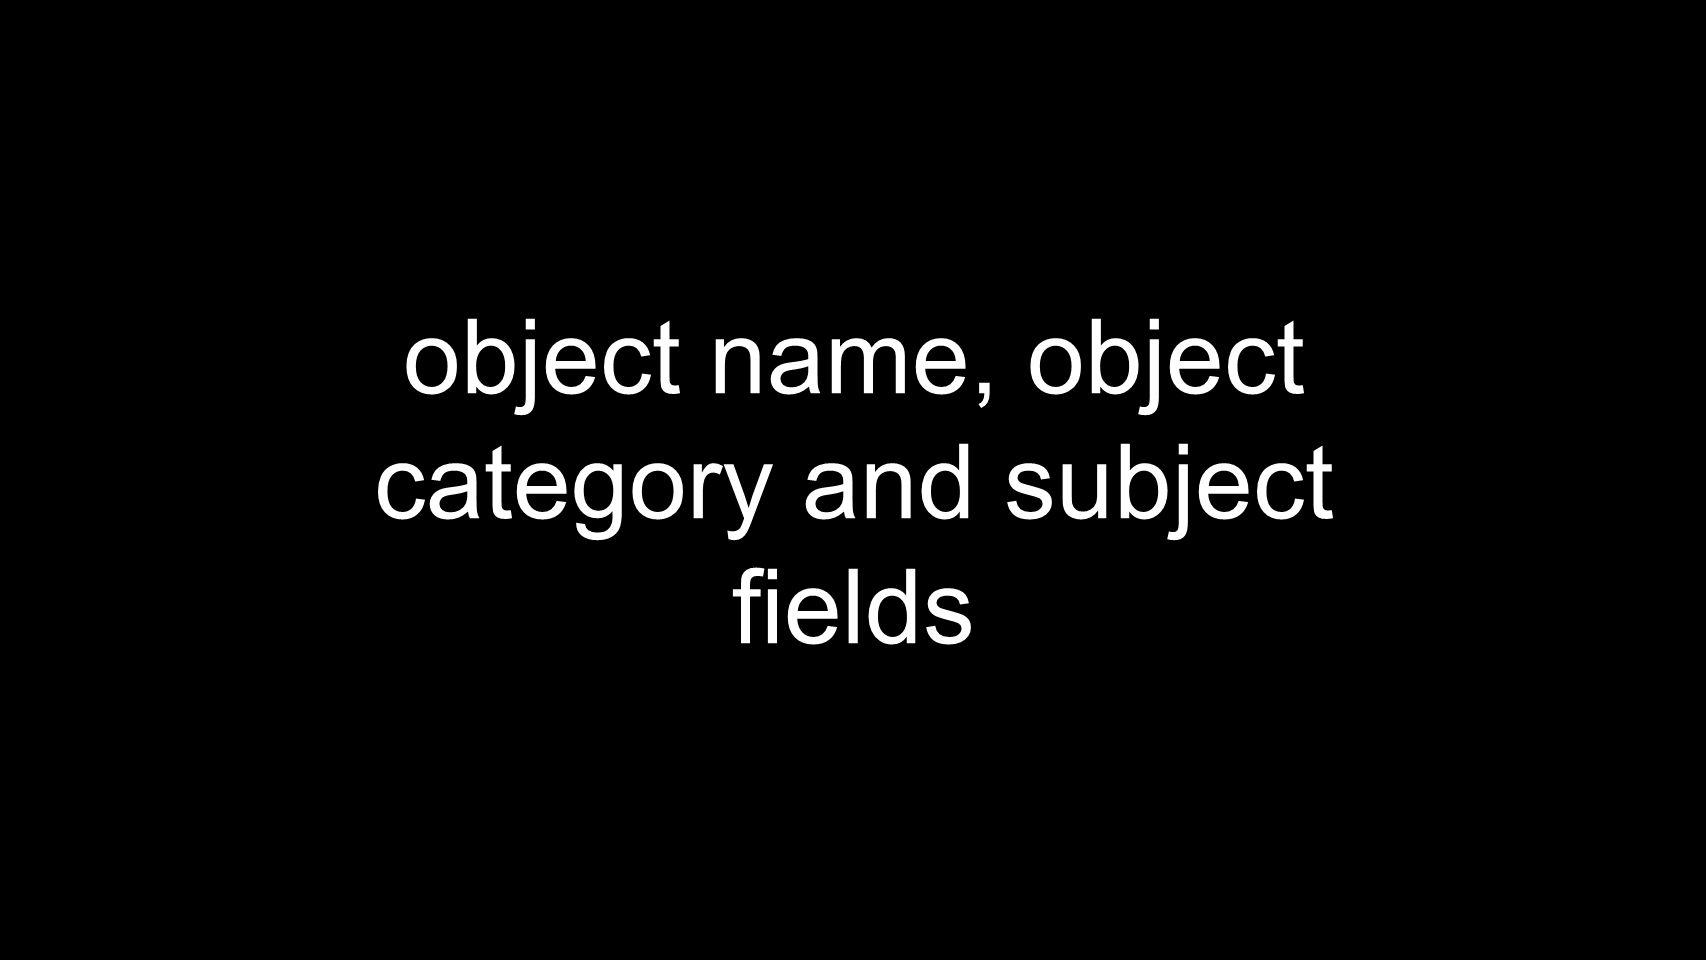 object name, object category and subject fields